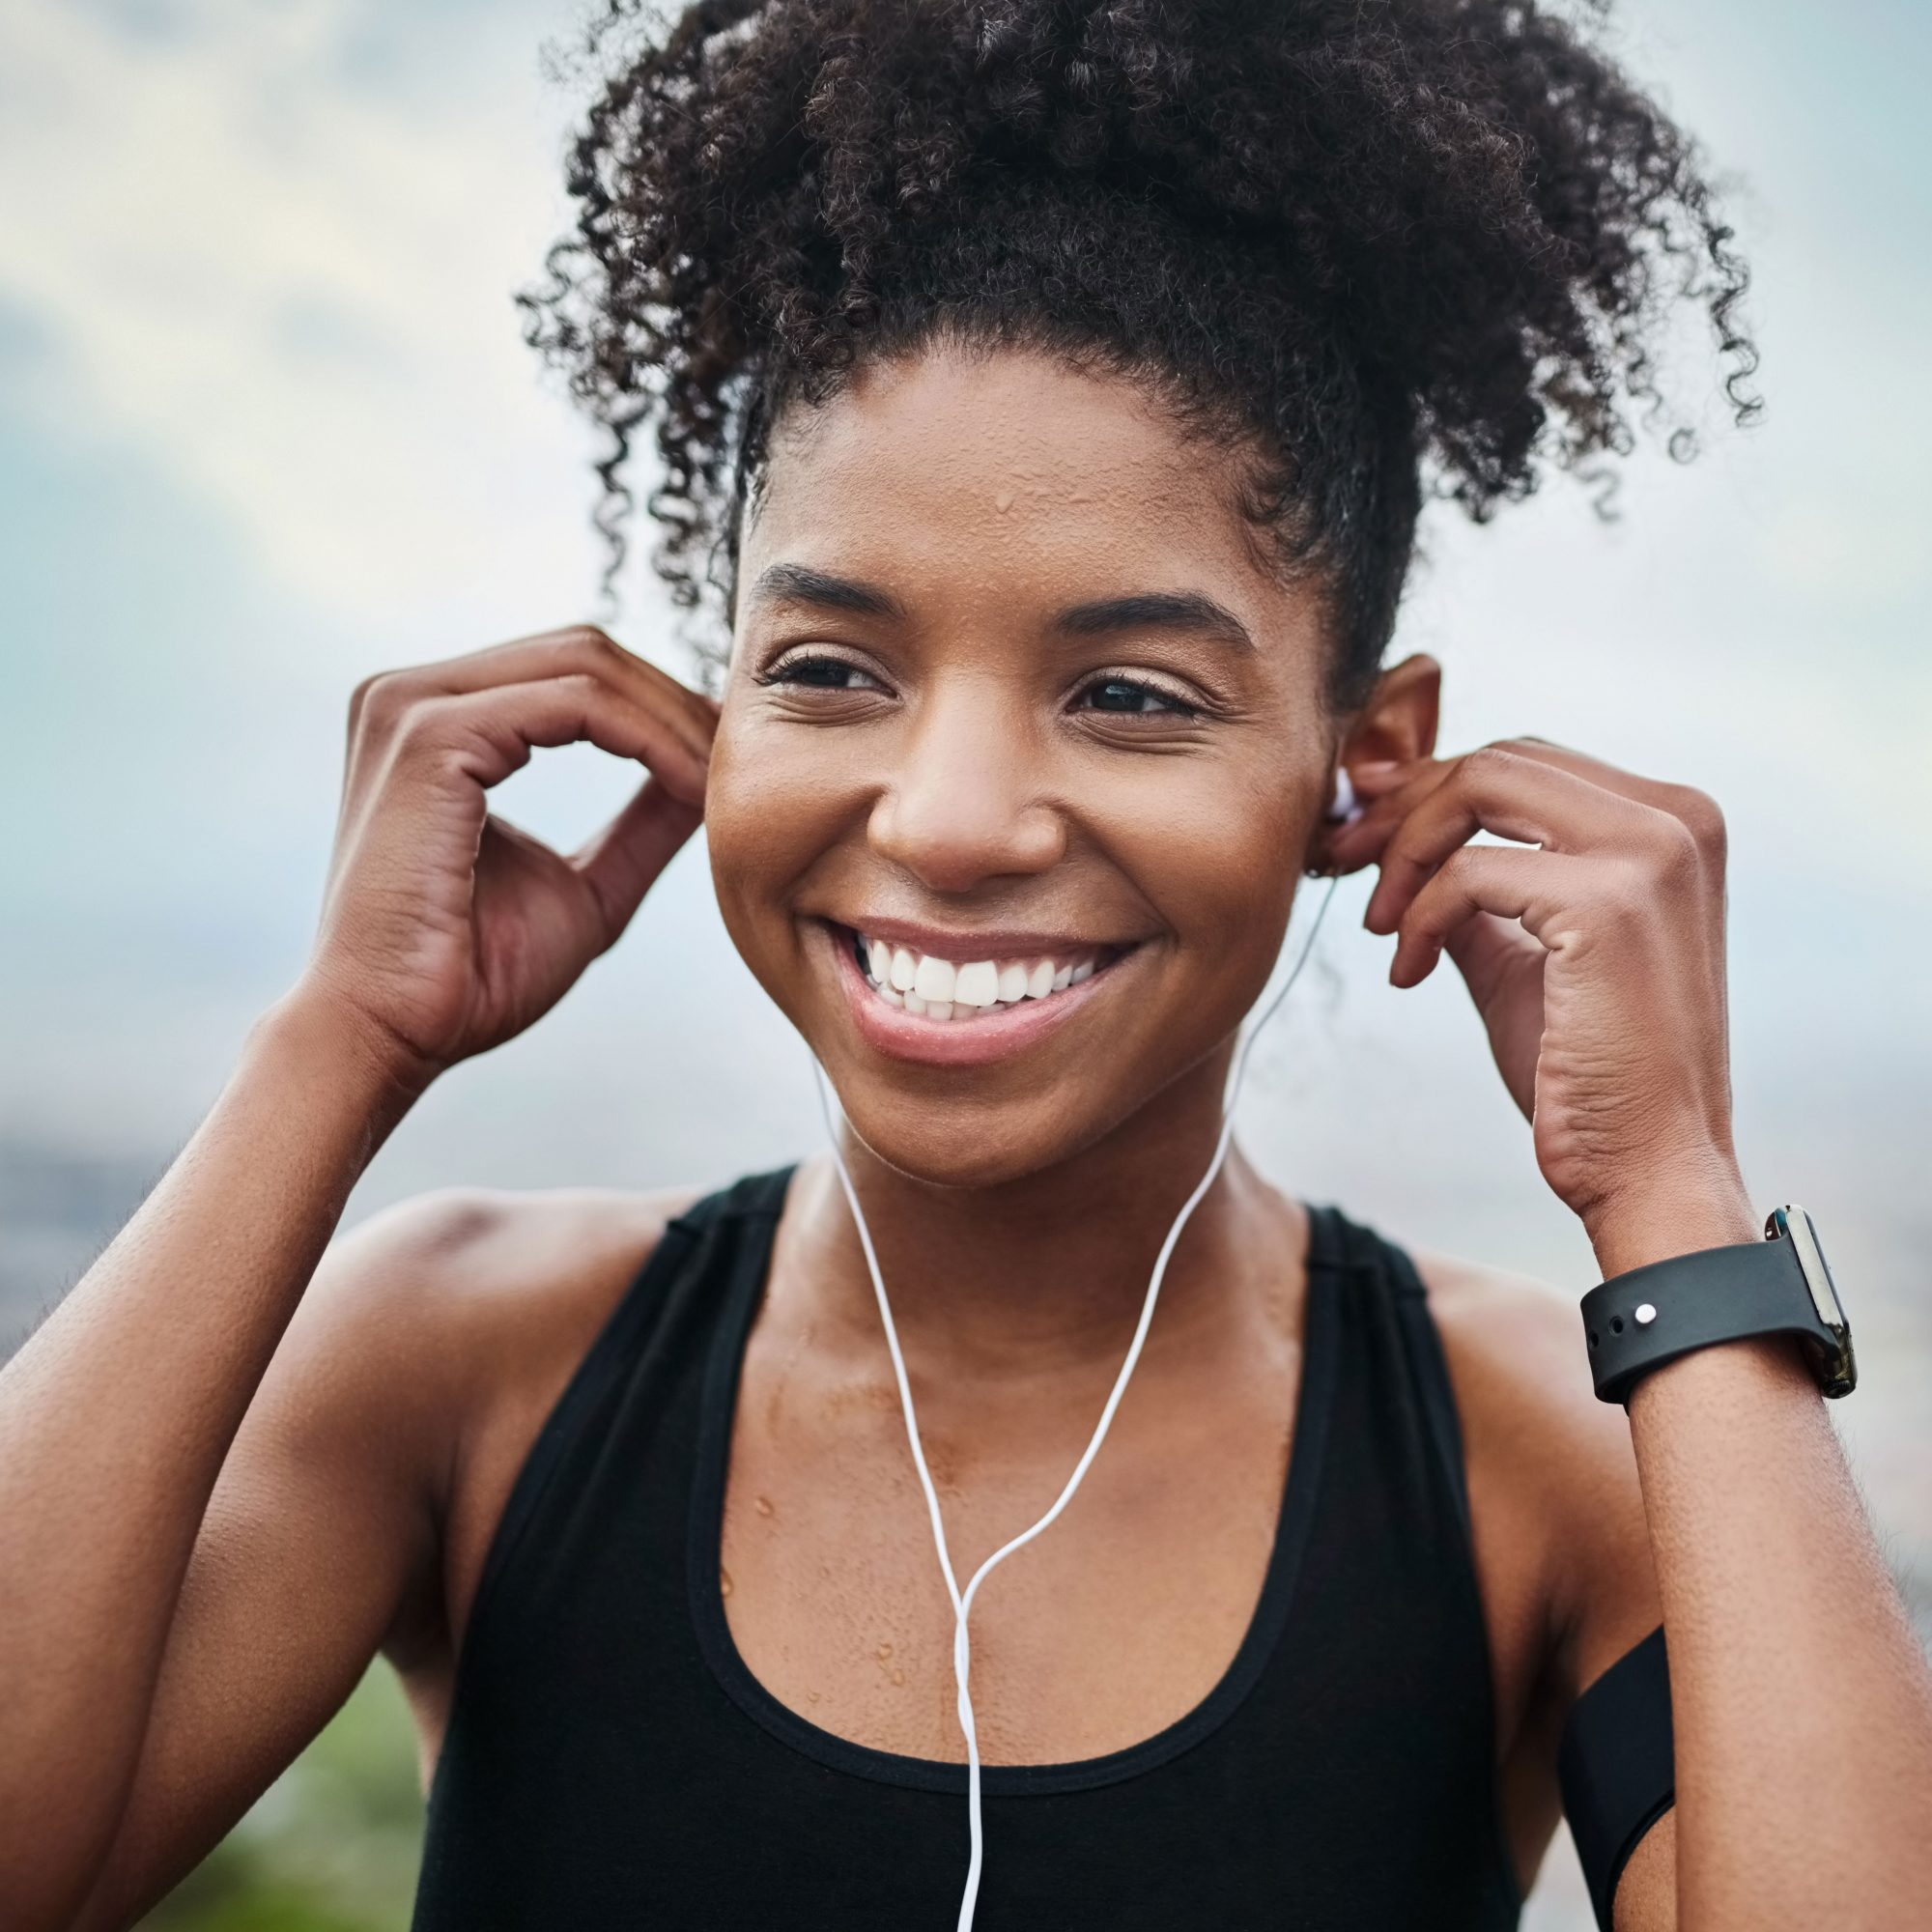 woman listening to music and working out